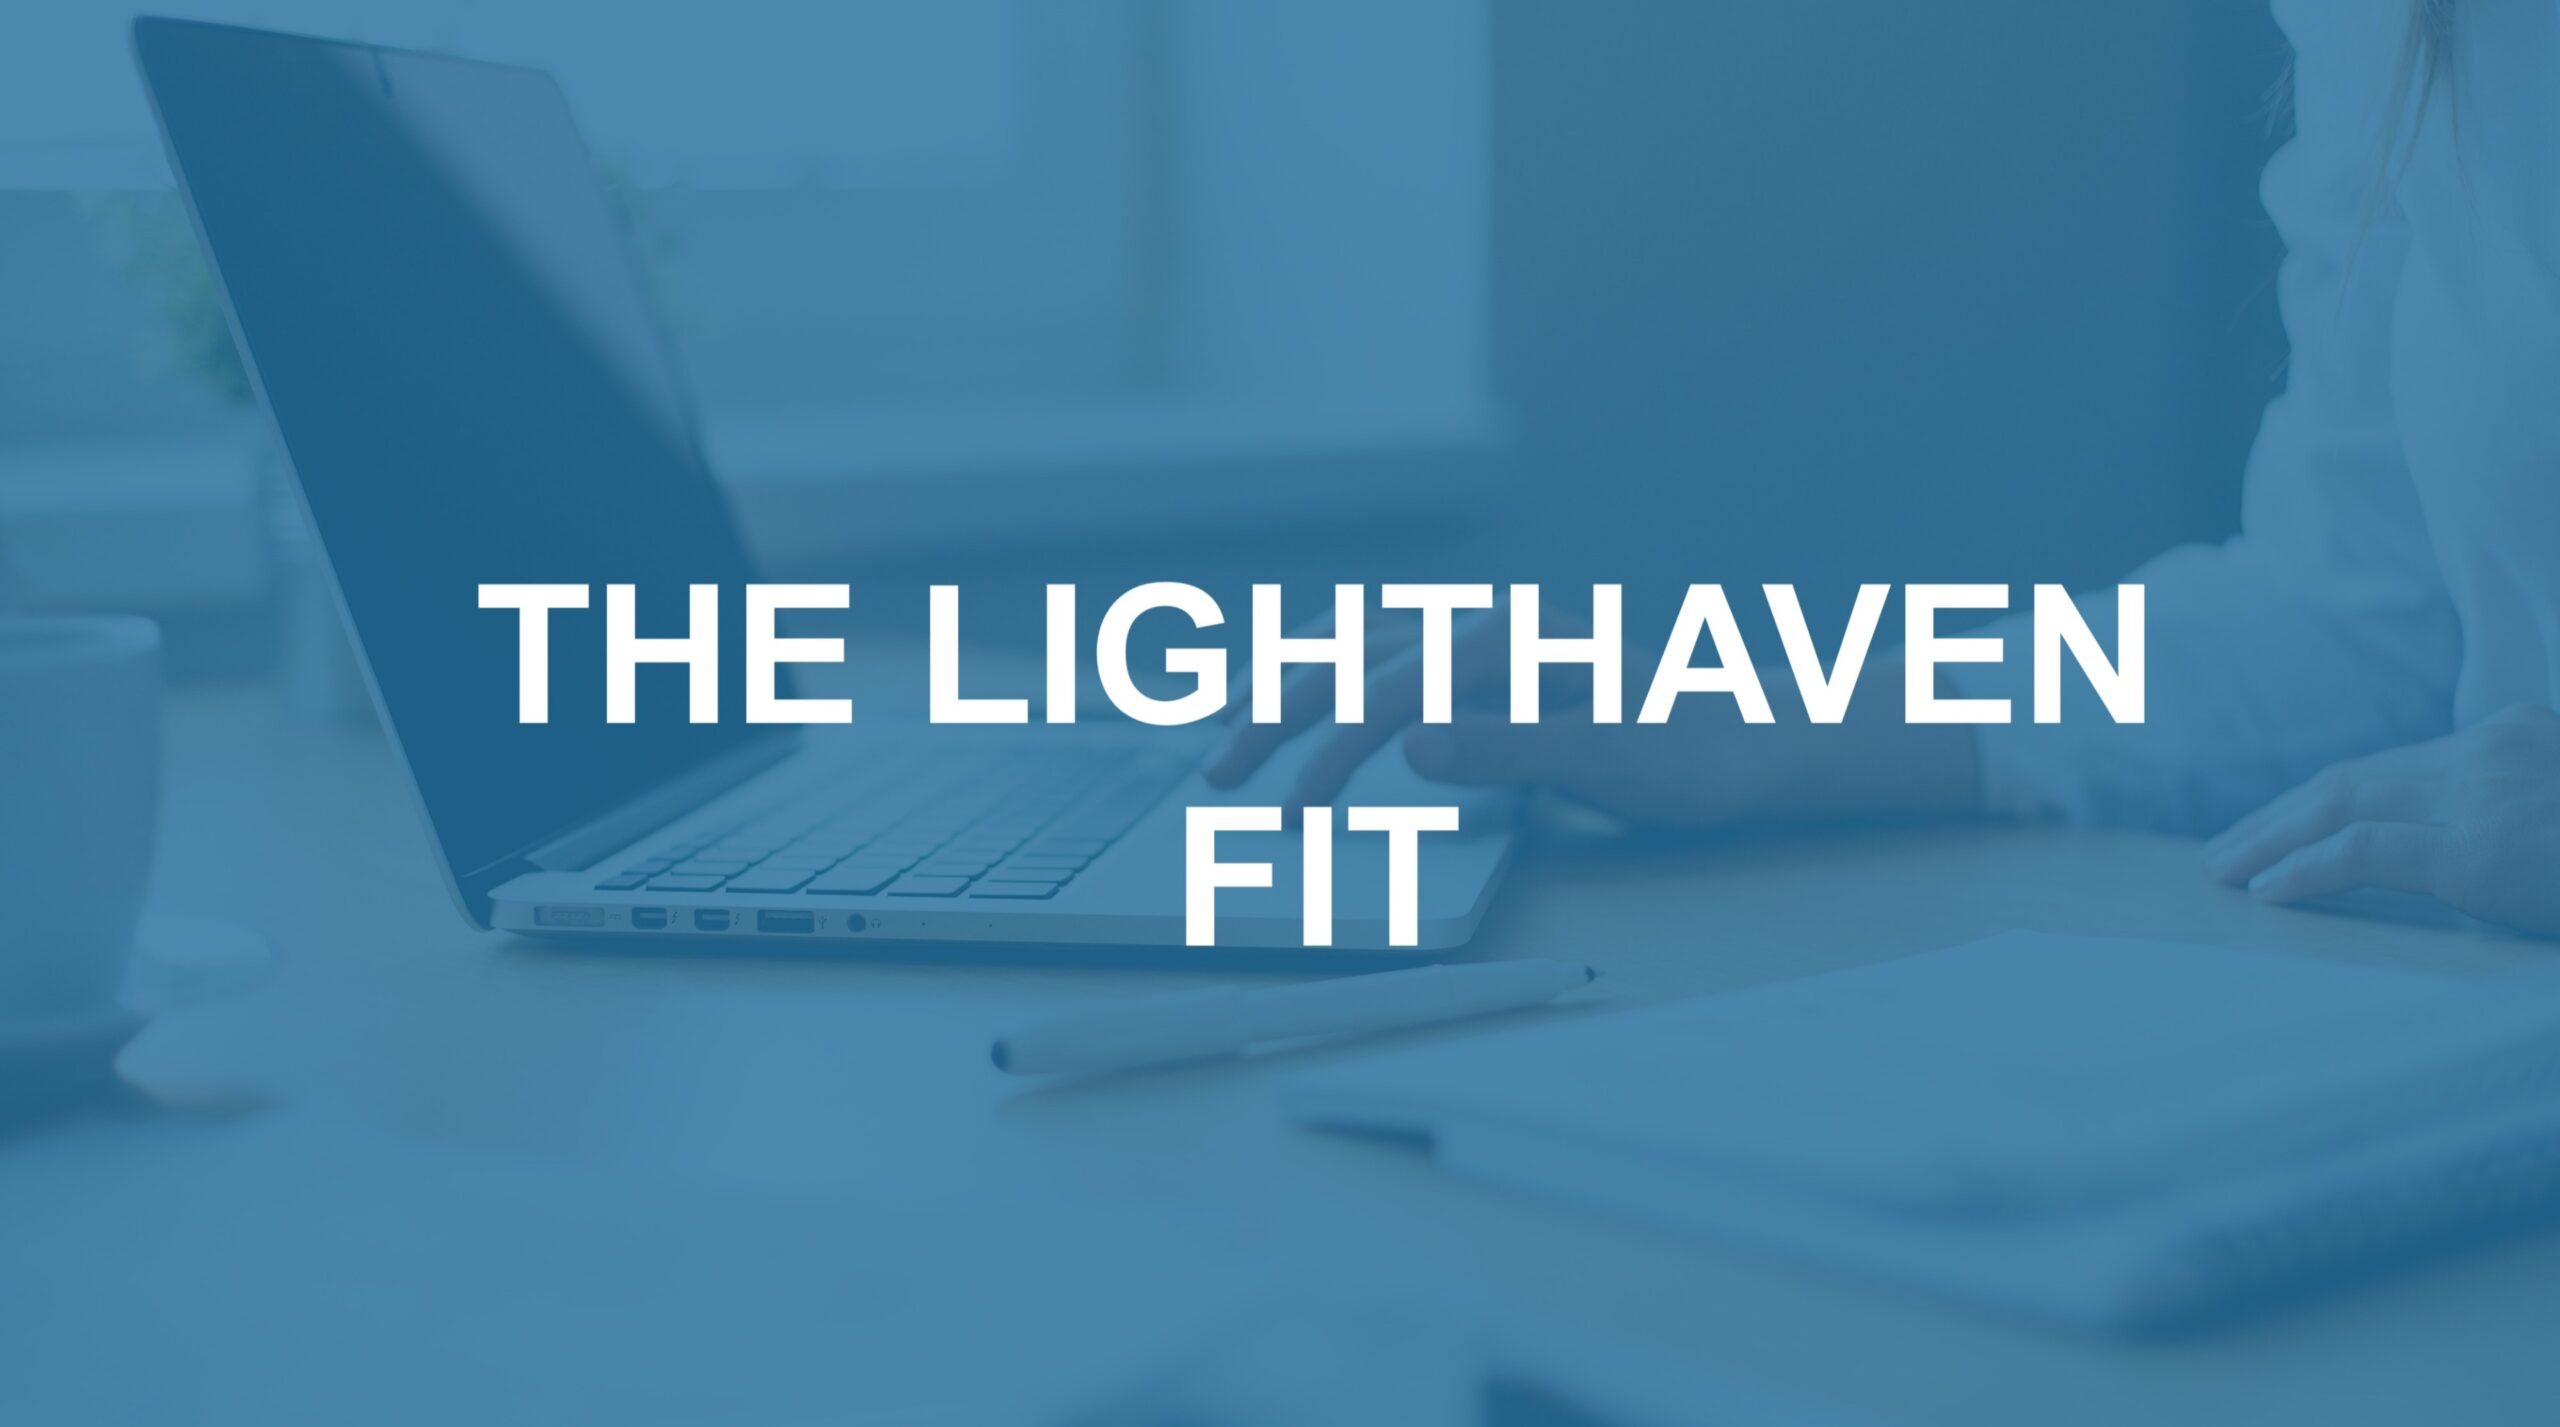 The Lighthaven Fit